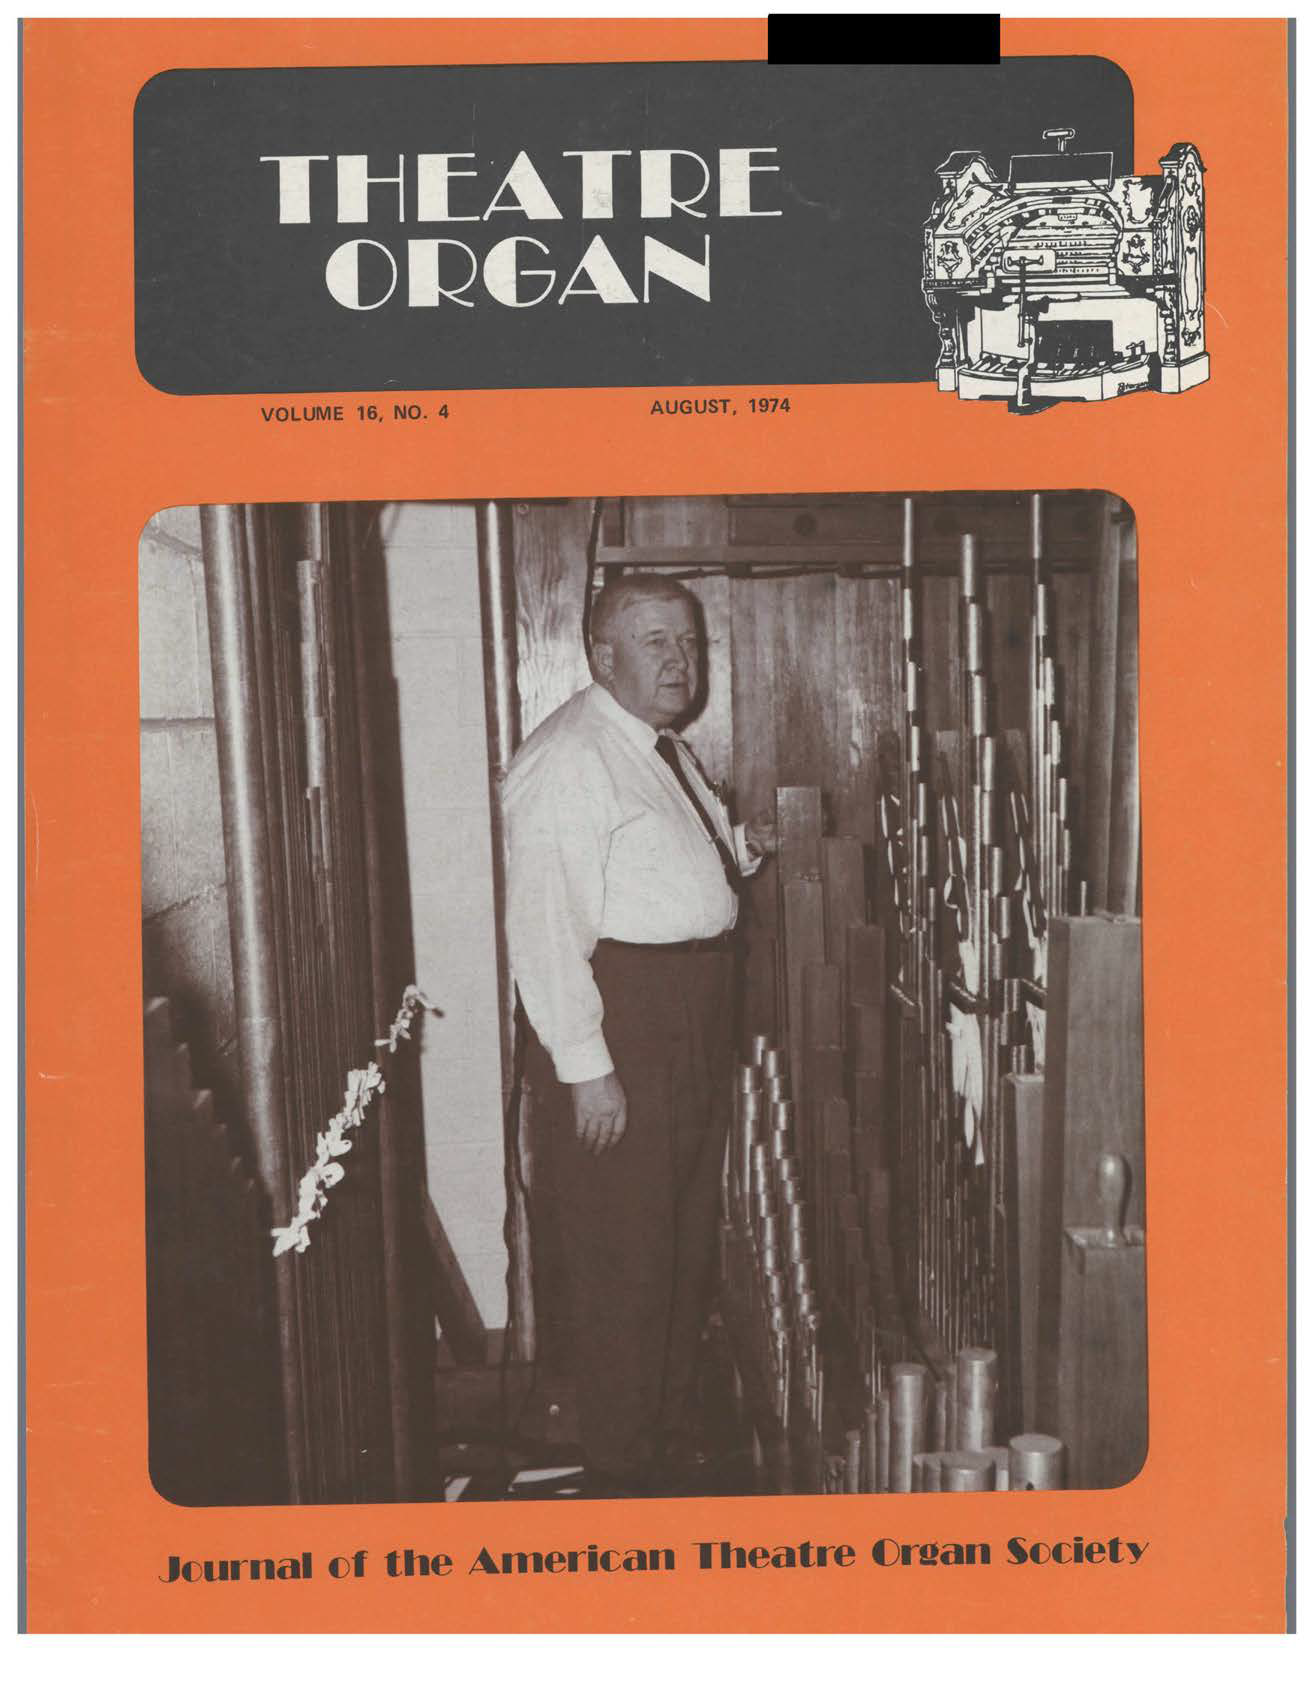 THEATRE ORGAN, AUGUST 1974, VOLUME 16, NUMBER 4